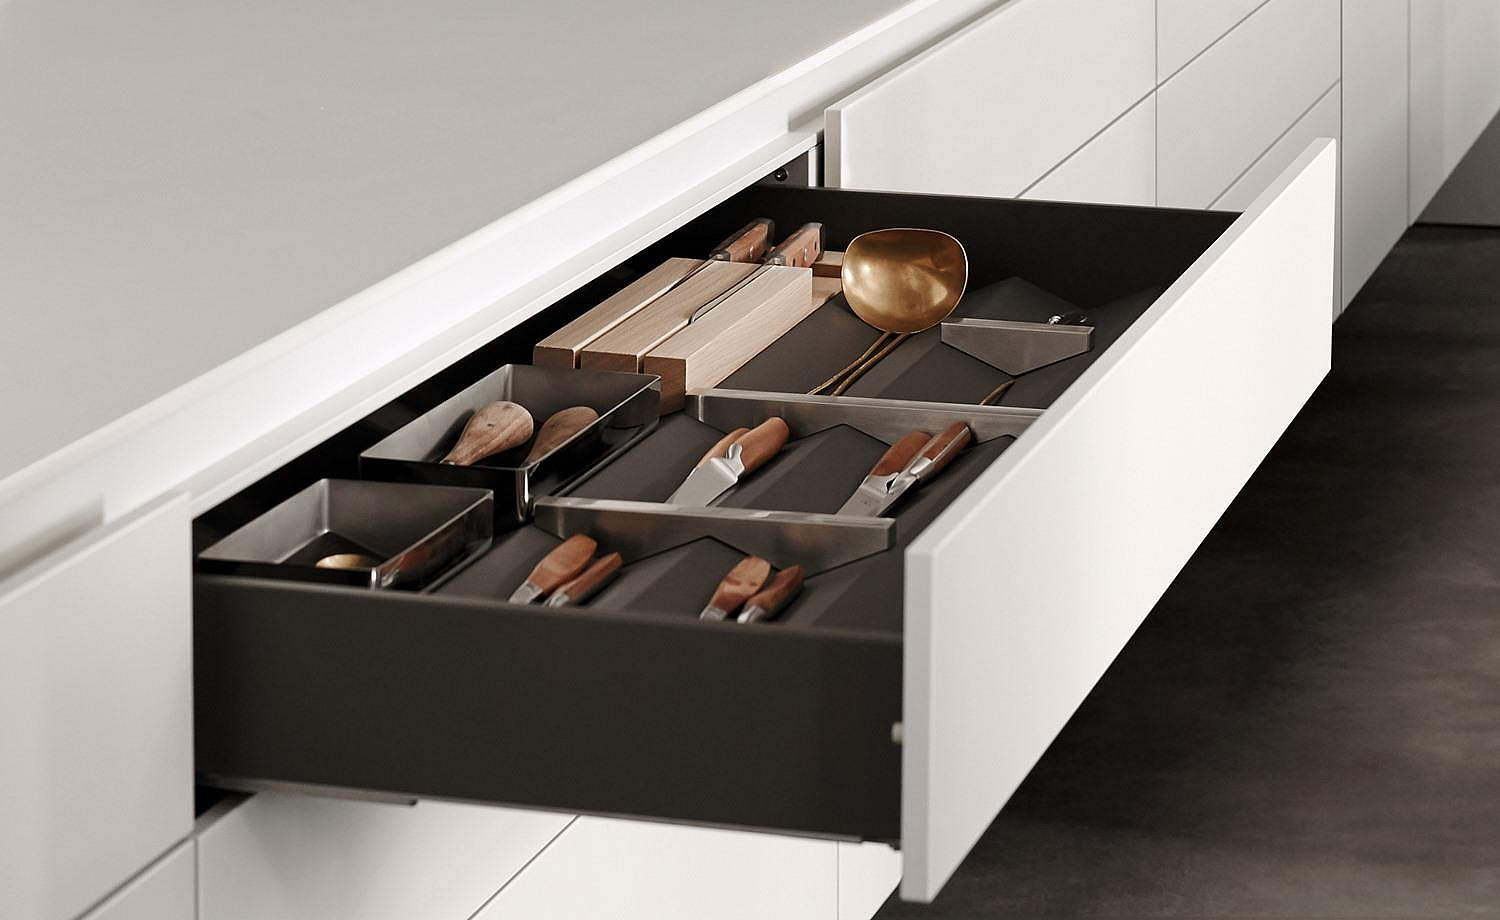 Drawer with organizing elements. Link: Equipment and functional elements for an organization system customized for you